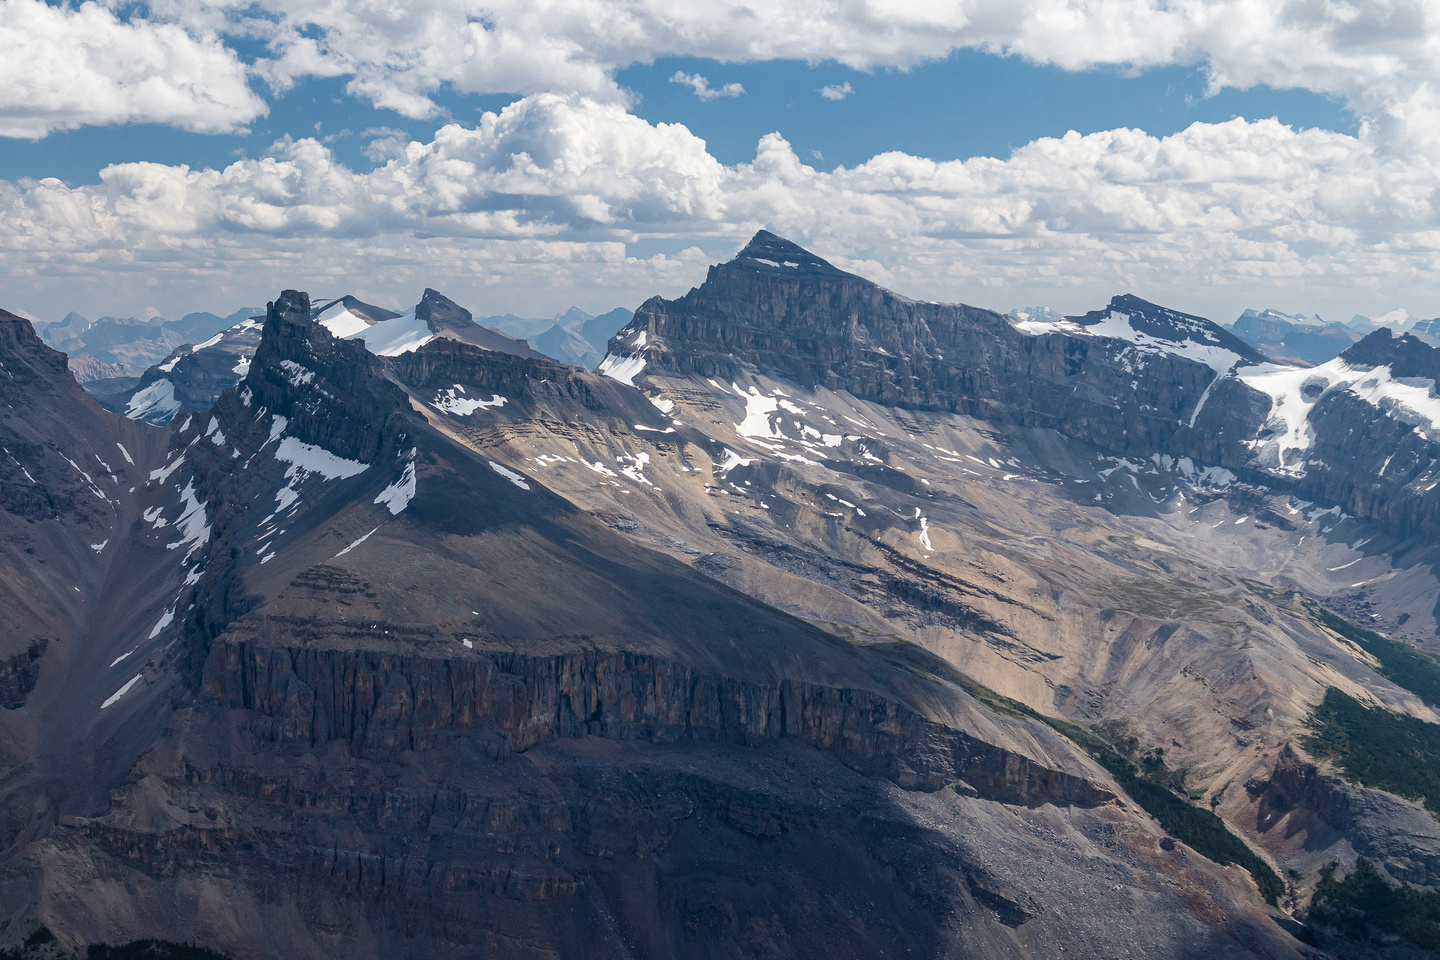 Resolute rises behind Troll Peak to the left of Mount Cline.